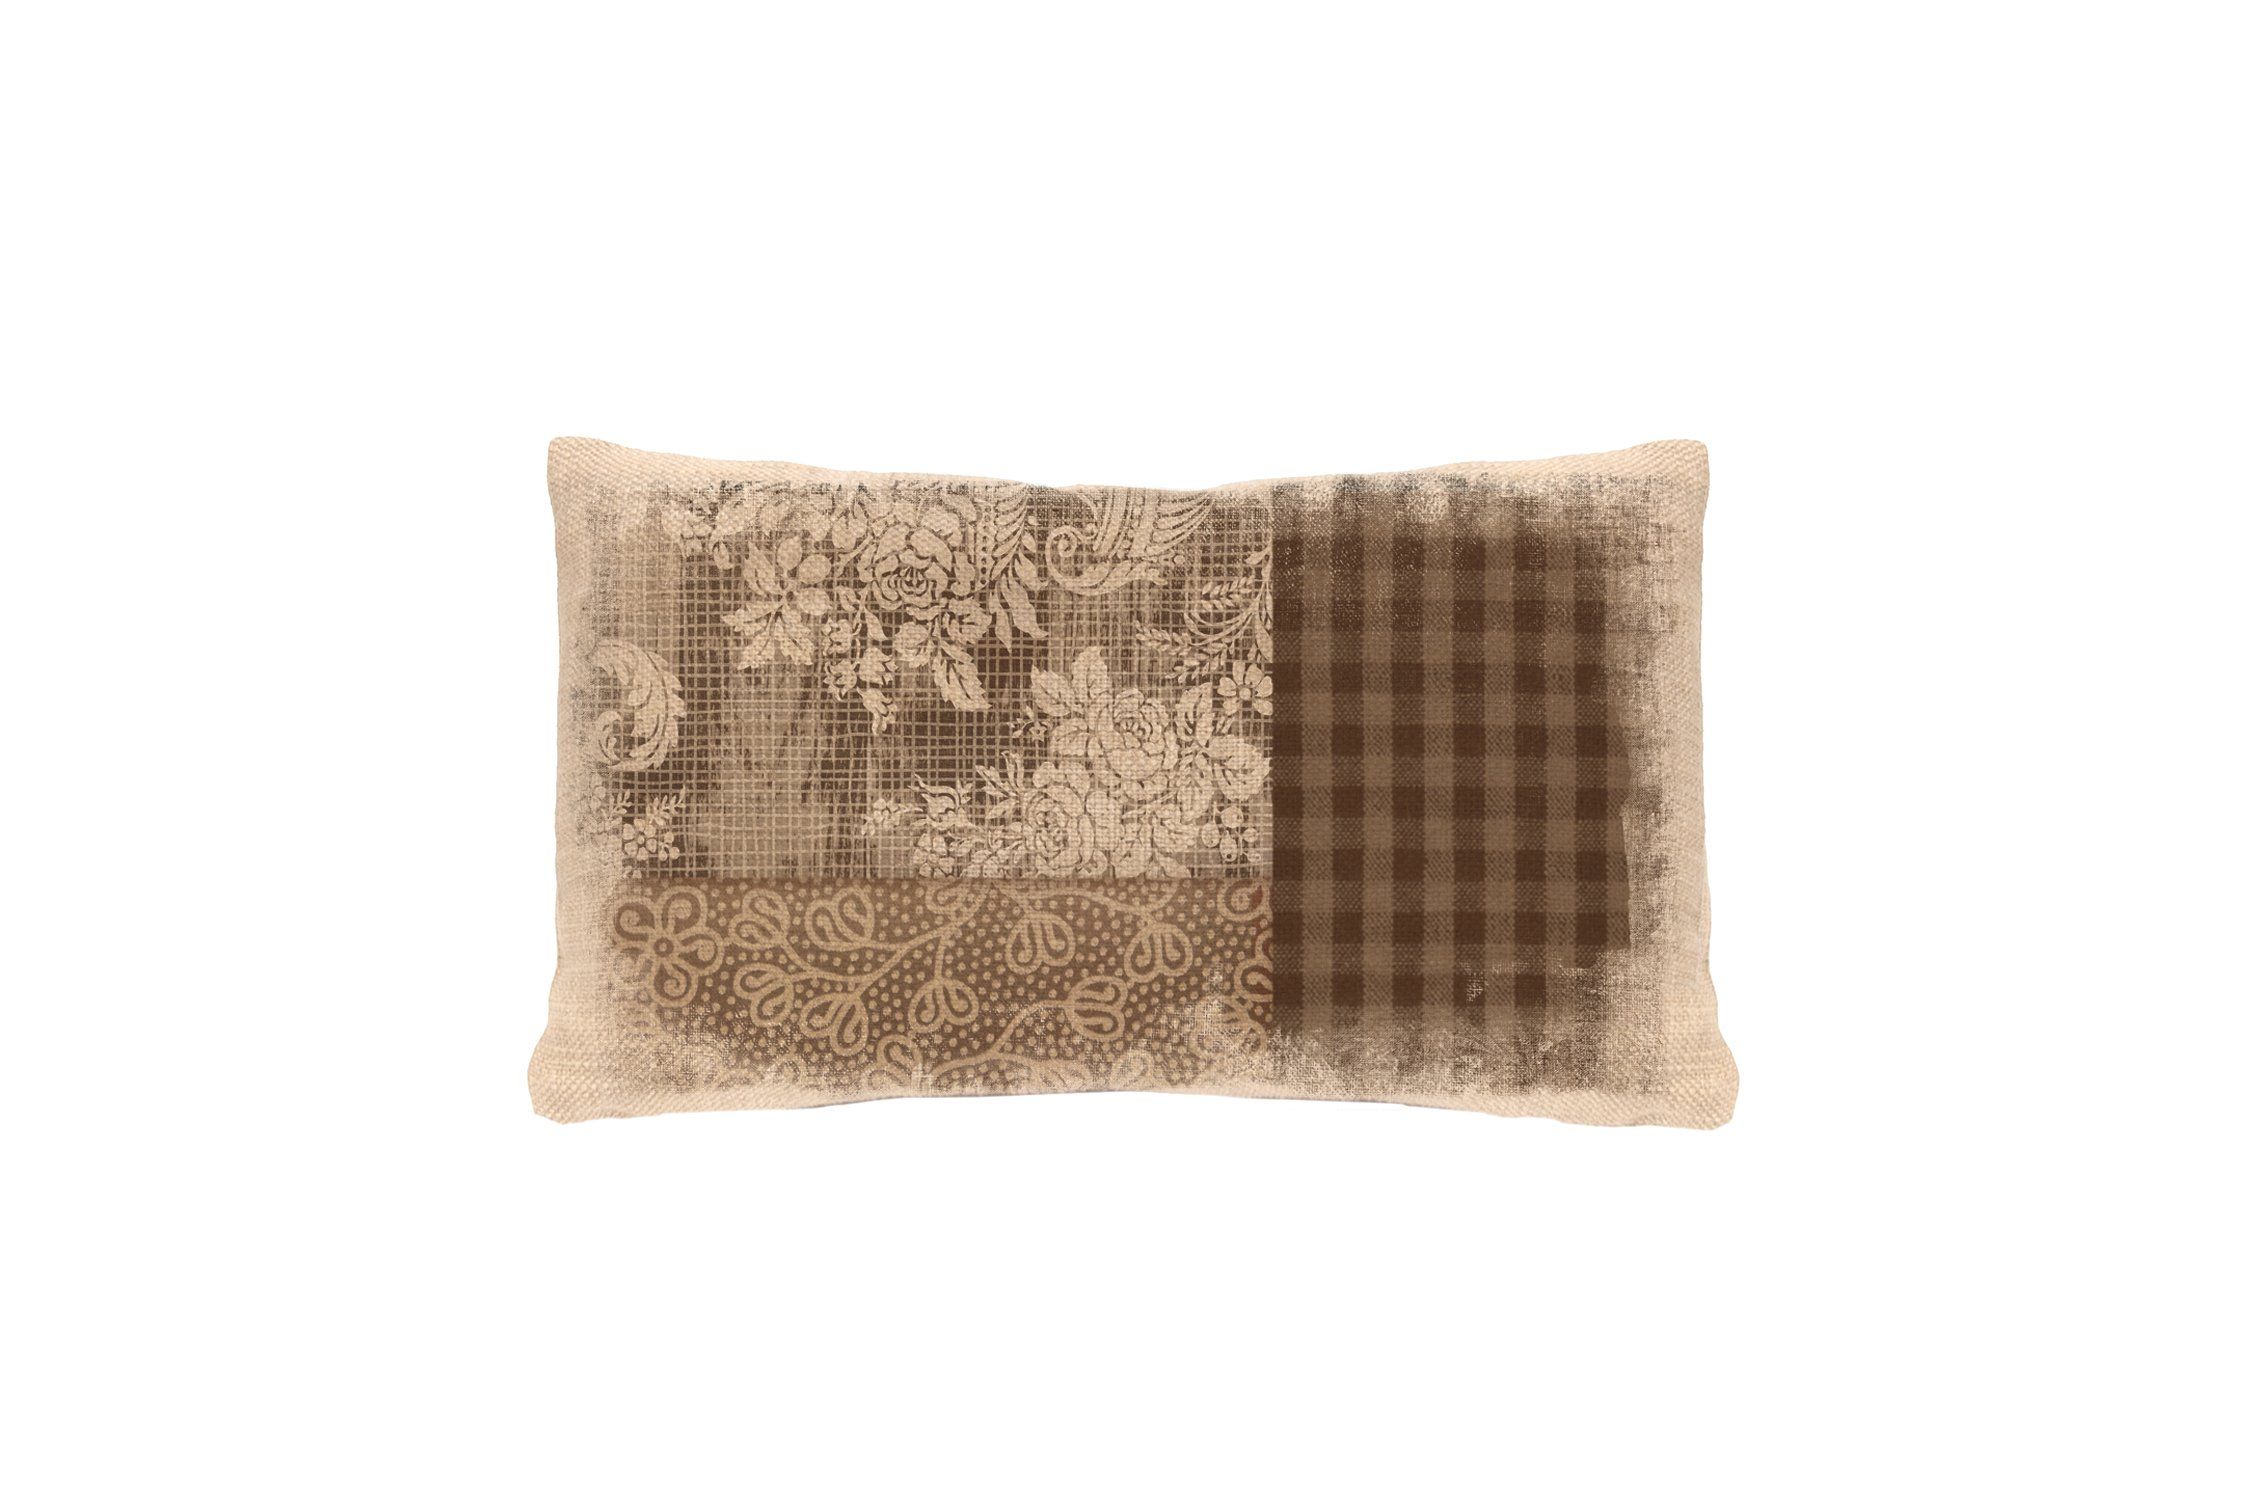 Heritage Lace Alpine Woods Textural Pillow Cover, 12 by 20-Inch, Natural by Heritage Lace (Image #1)